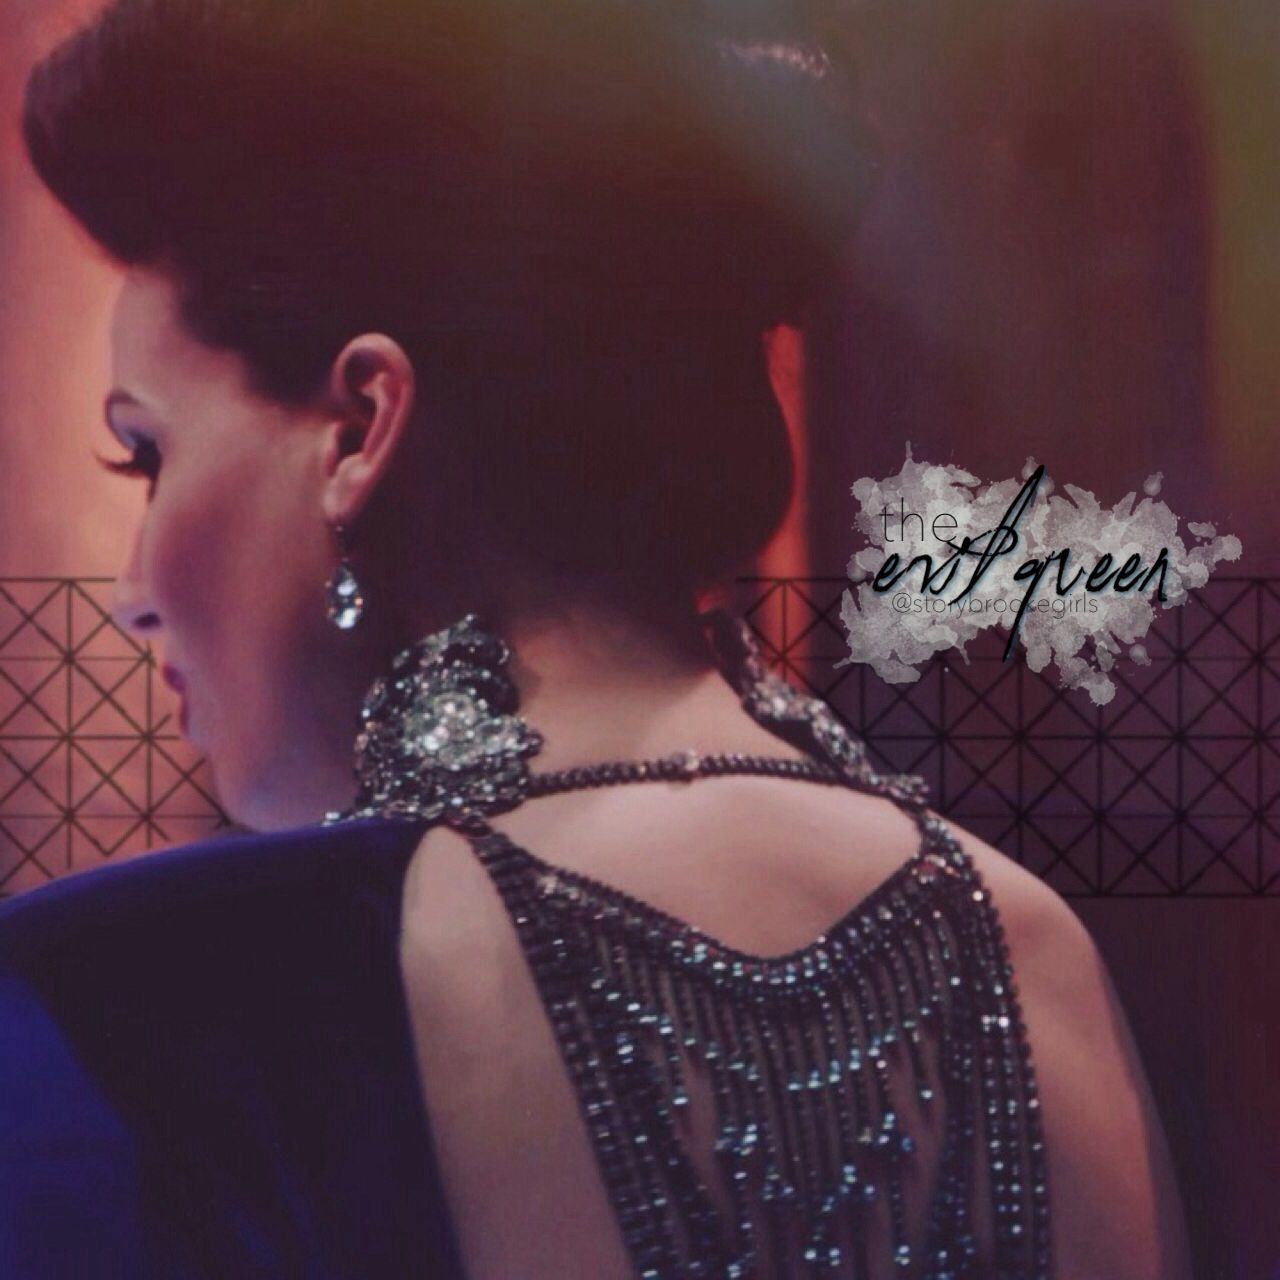 Regina the evil queen once upon a time